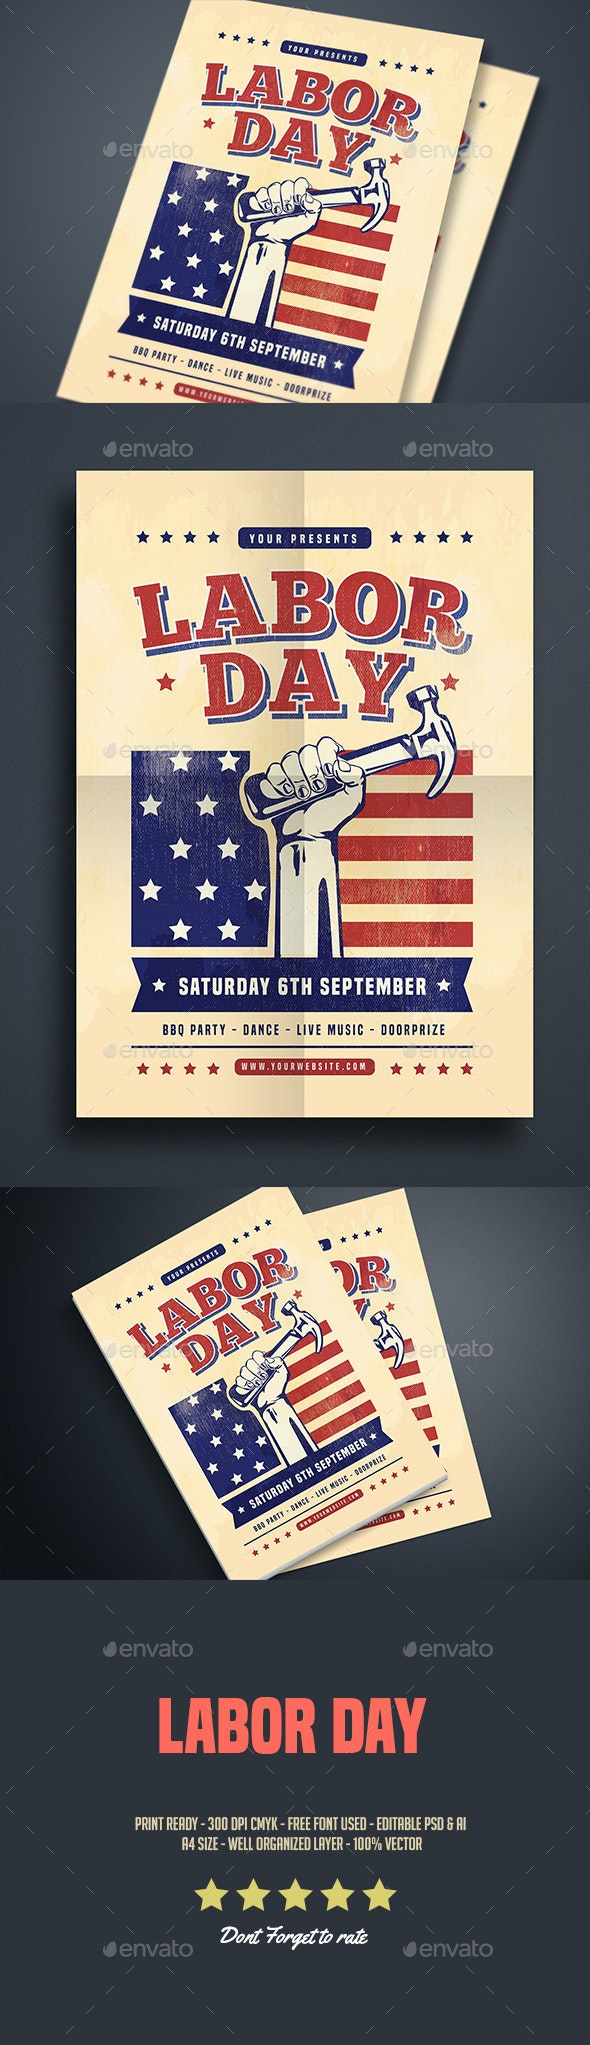 Labor Day Celebration Flyer - Events Flyers